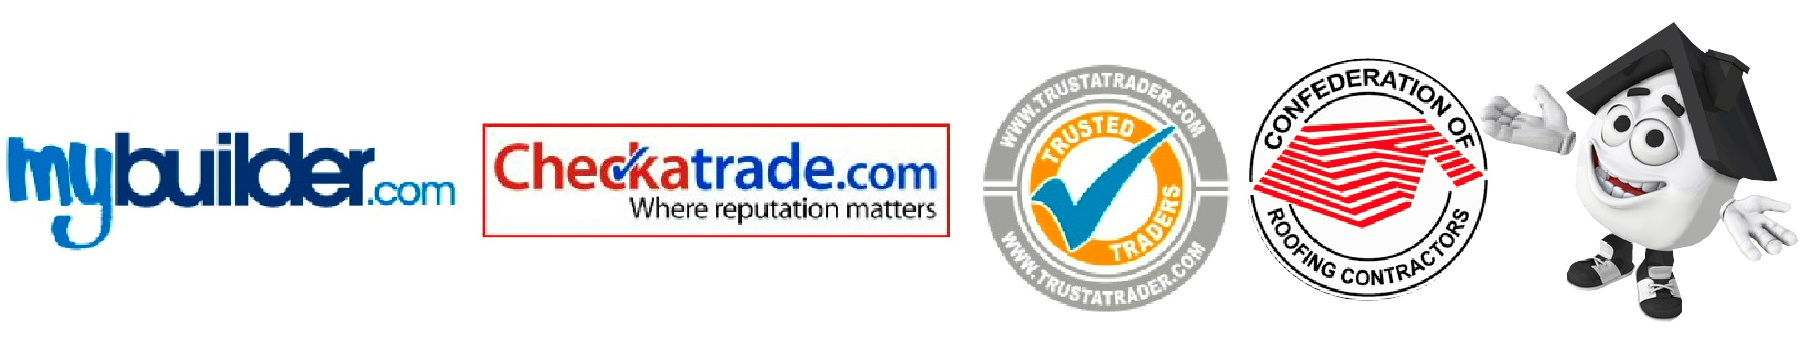 Just Roofs are members of the Confederation of Roofing Contractors and are listed on Checkatrade